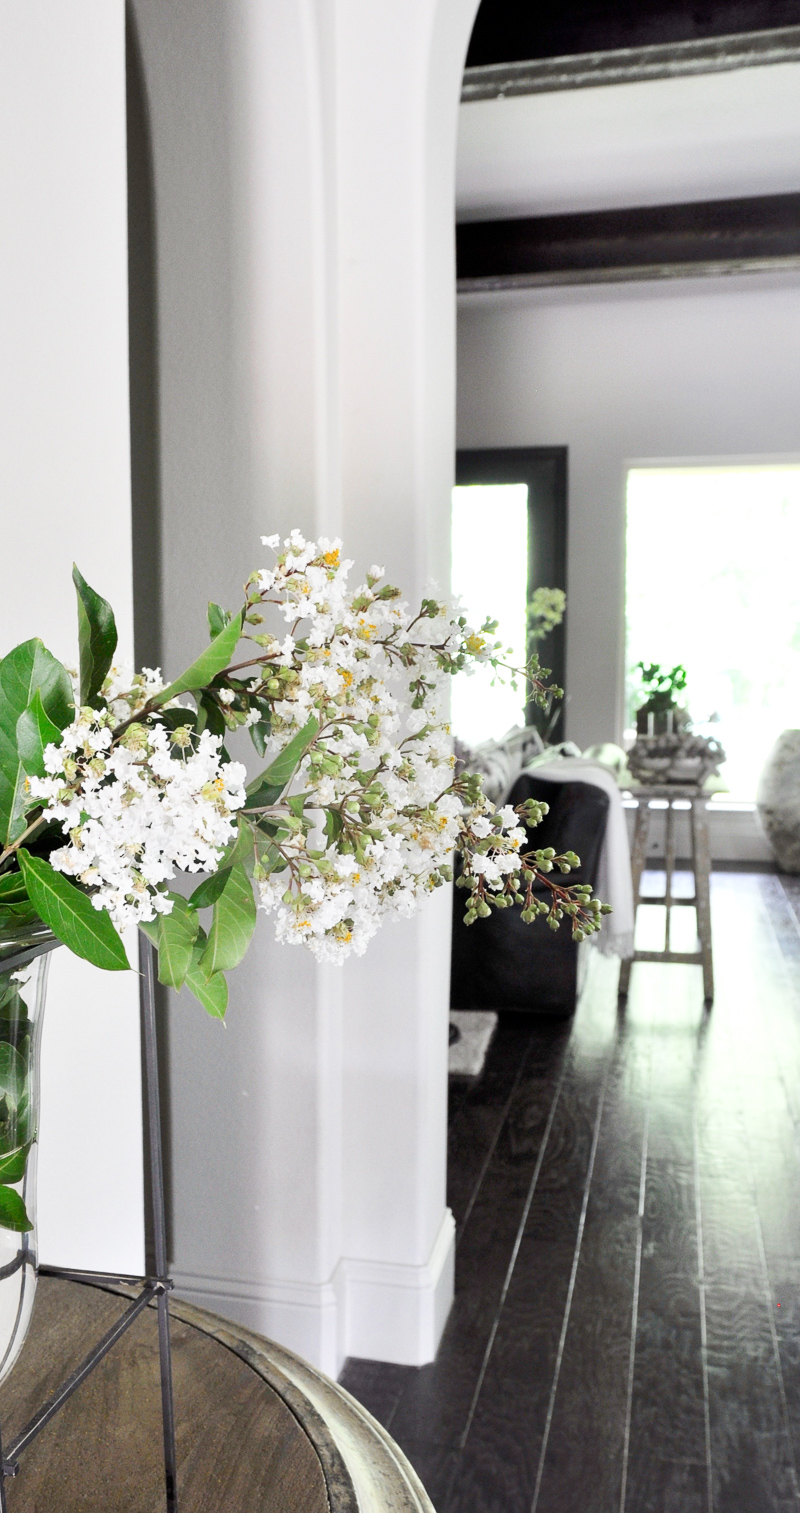 Stunning Foyer with Arches Beams and White Summer Flowers_